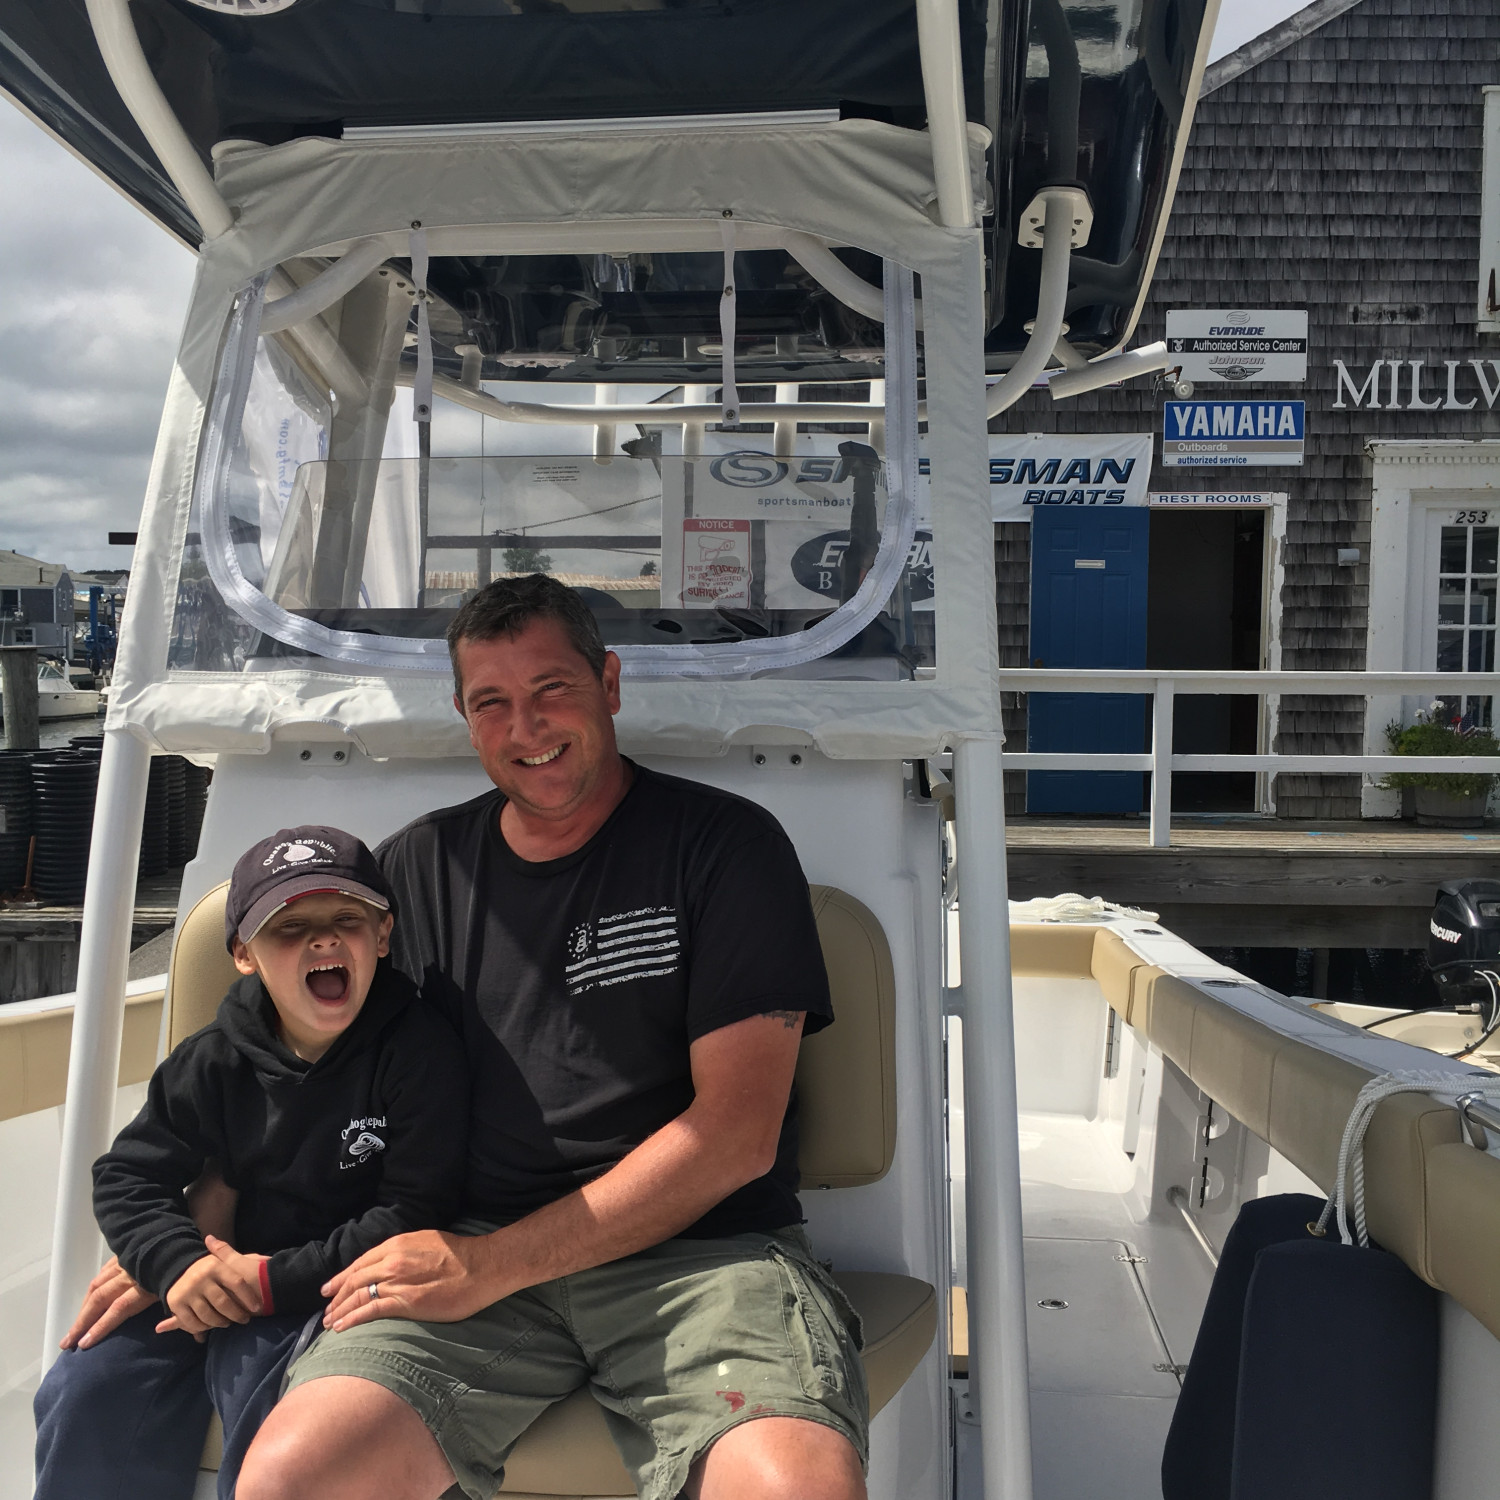 Title: Me and my boy - On board their Sportsman Open 282 Center Console - Location: Millway Marina, Barnstable, MA. Participating in the Photo Contest #SportsmanJanuary2018